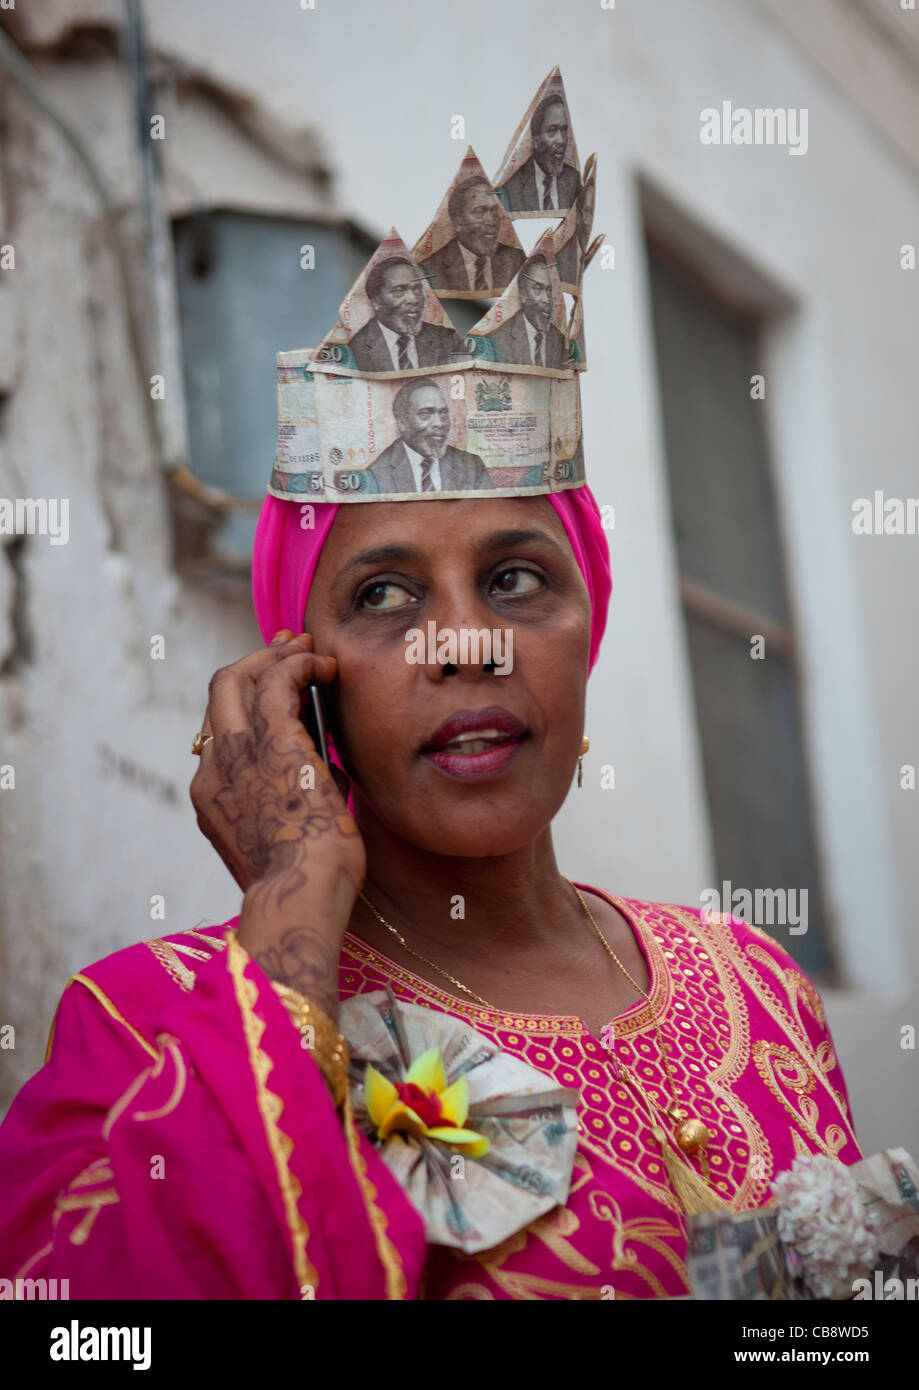 Woman Calling With Cellphone, Wearing Banknotes Hat In Maulidi Festival, Lamu, Kenya Stock Photo